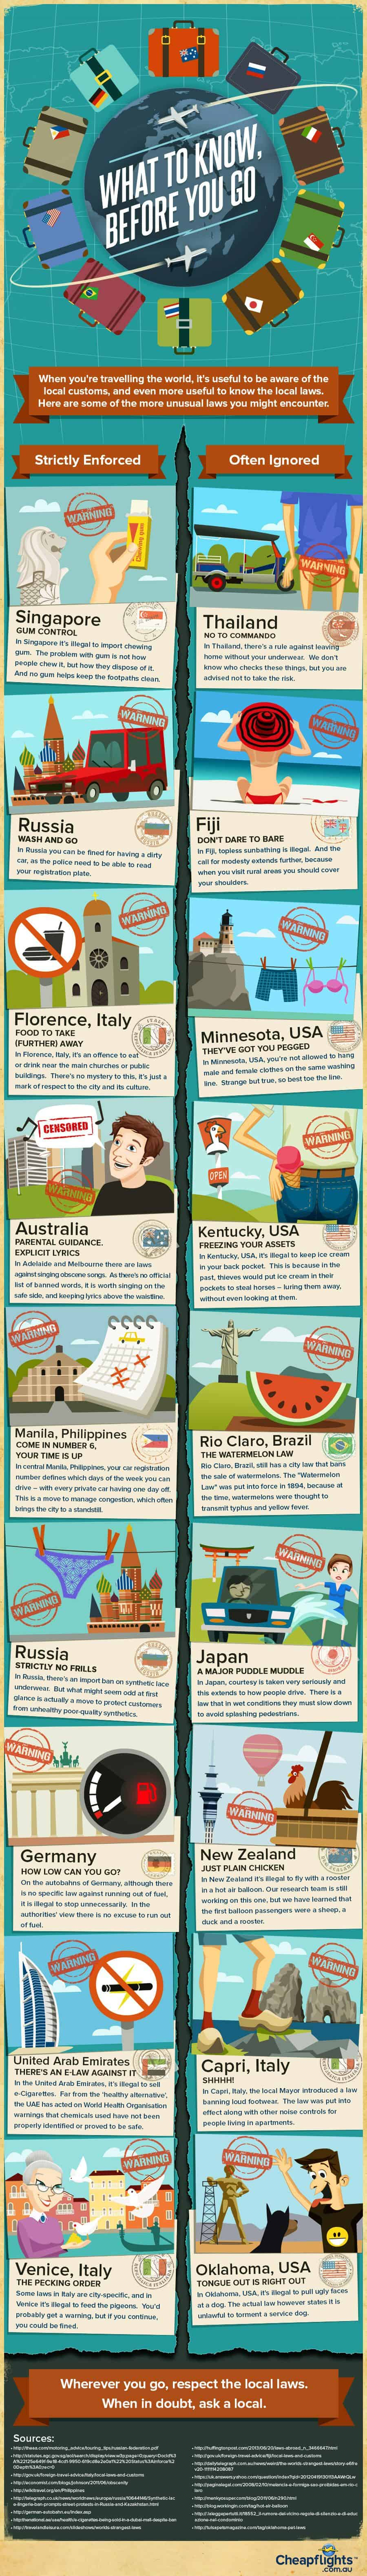 Laws to know before traveling to a foreign country